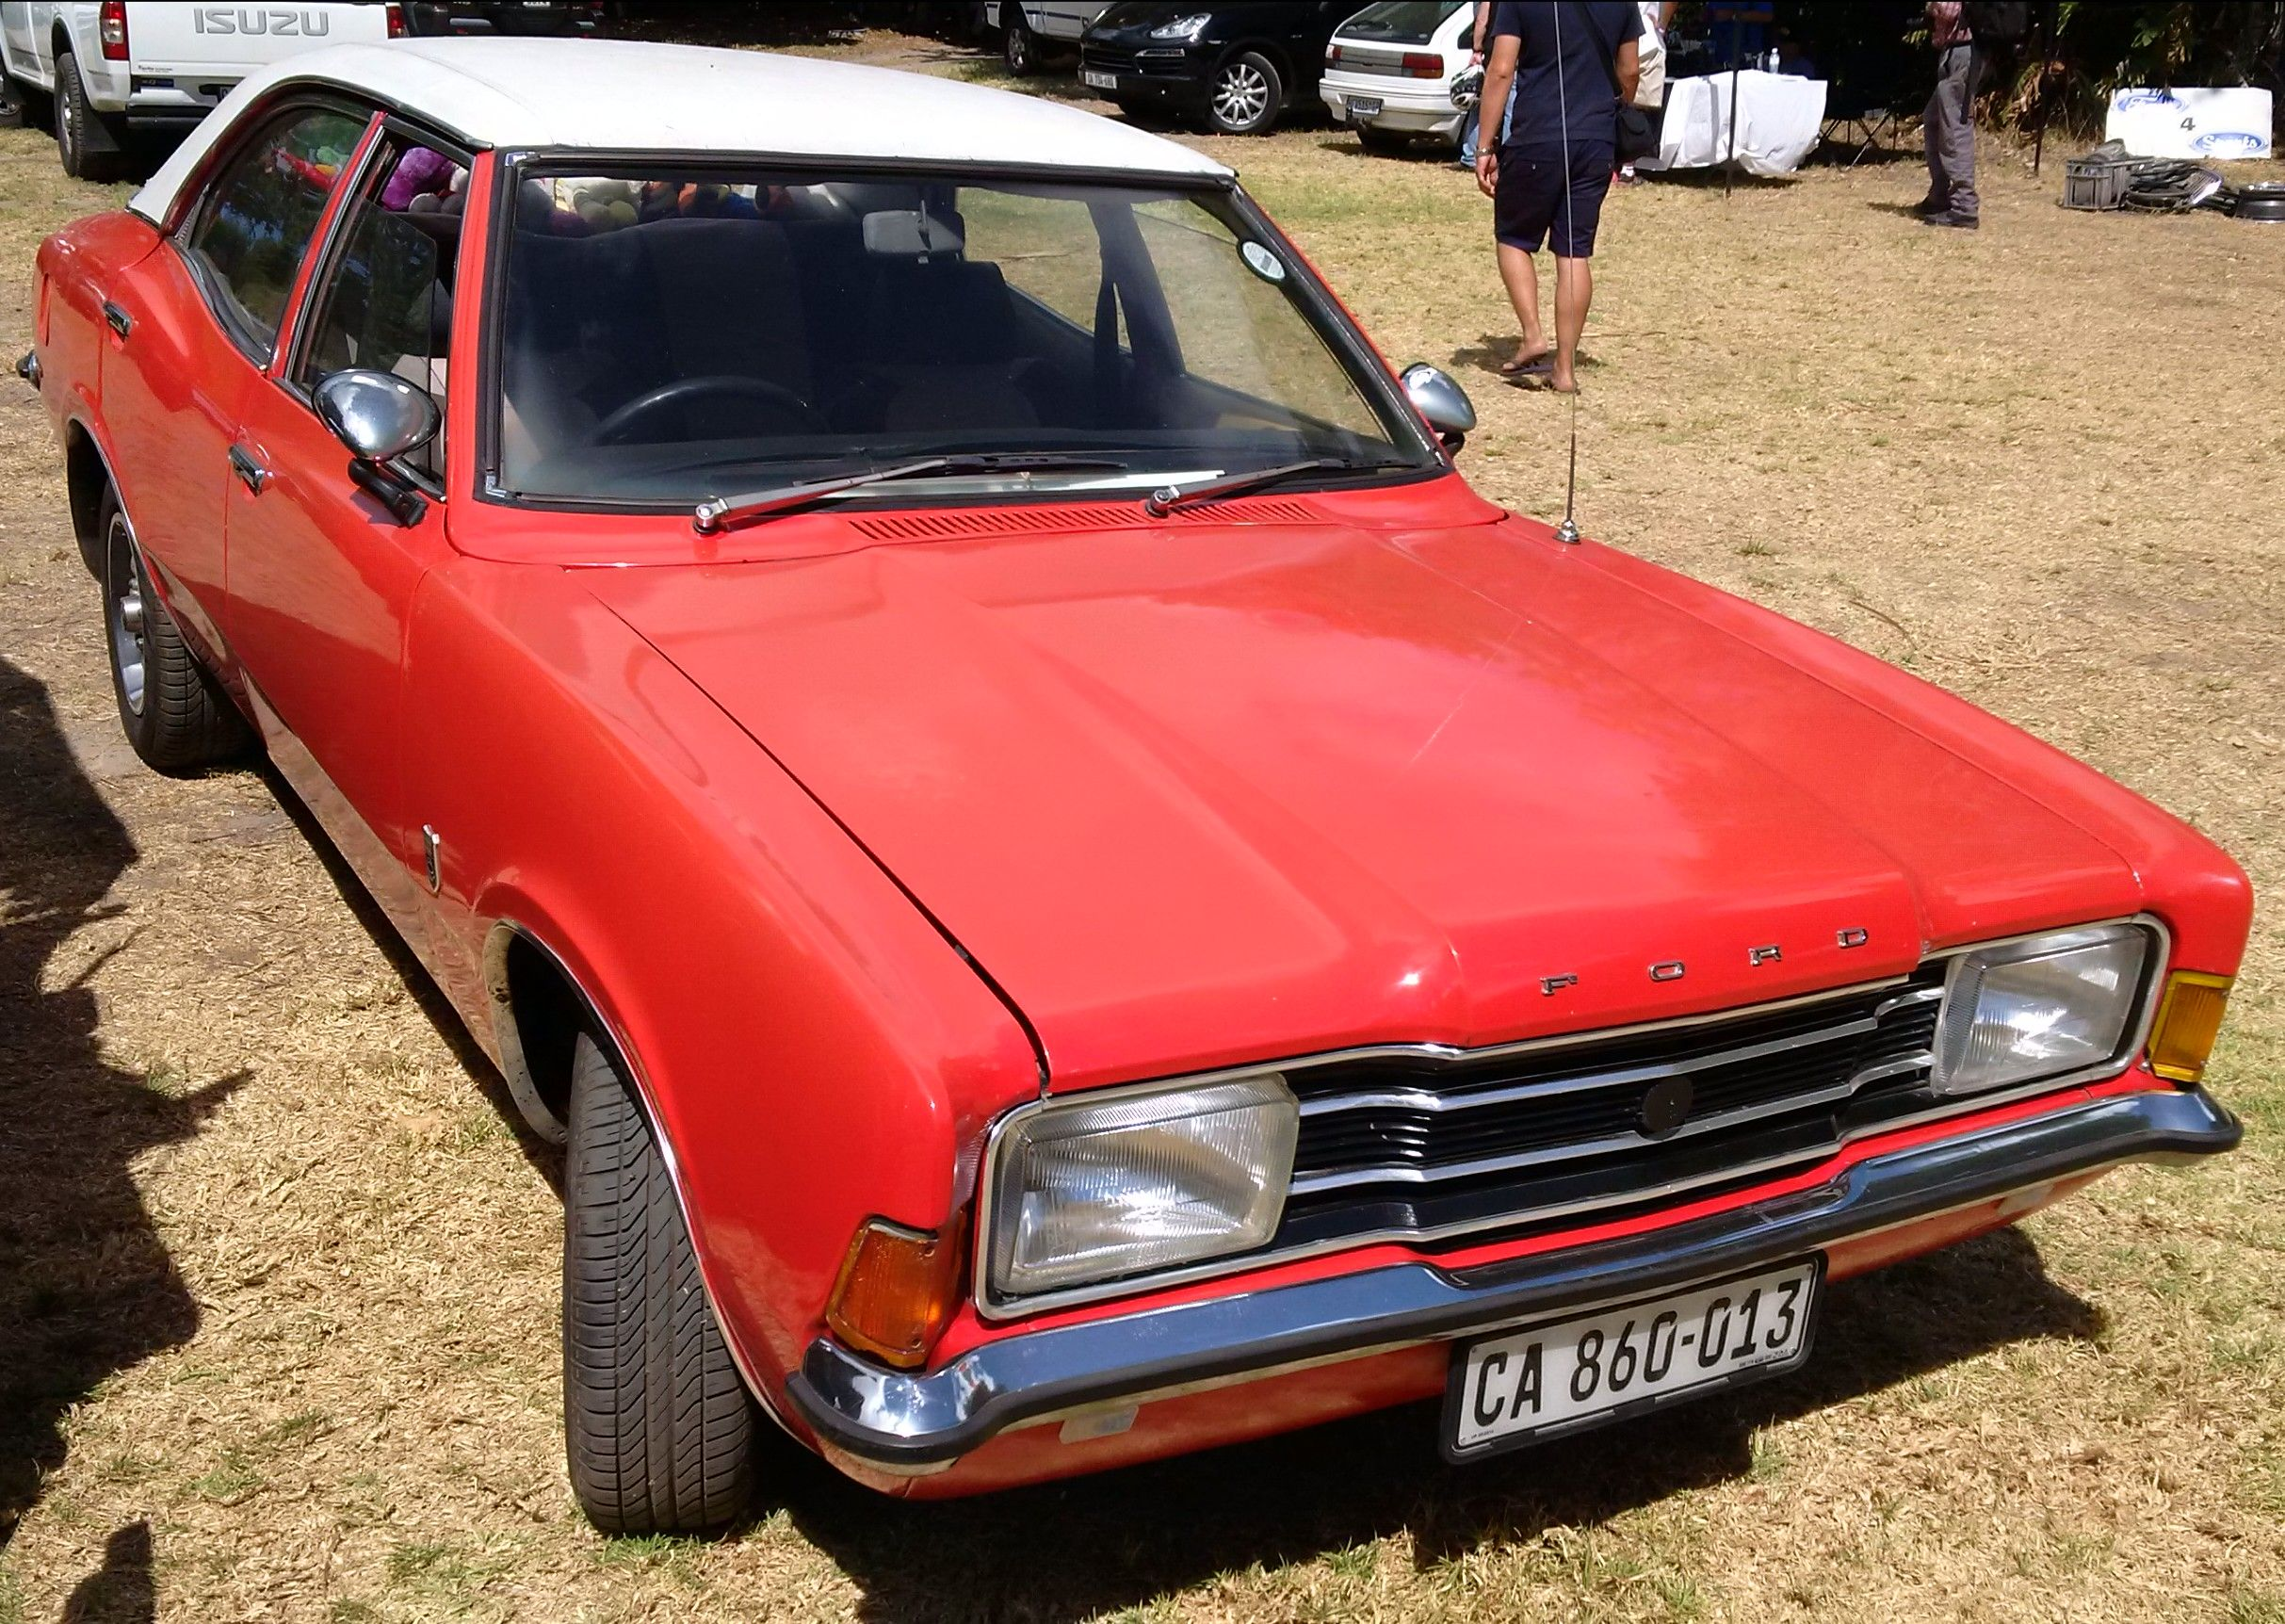 Ford Cortina Xle 3000 Big Six Classic Cars Classic Car Show Big Six